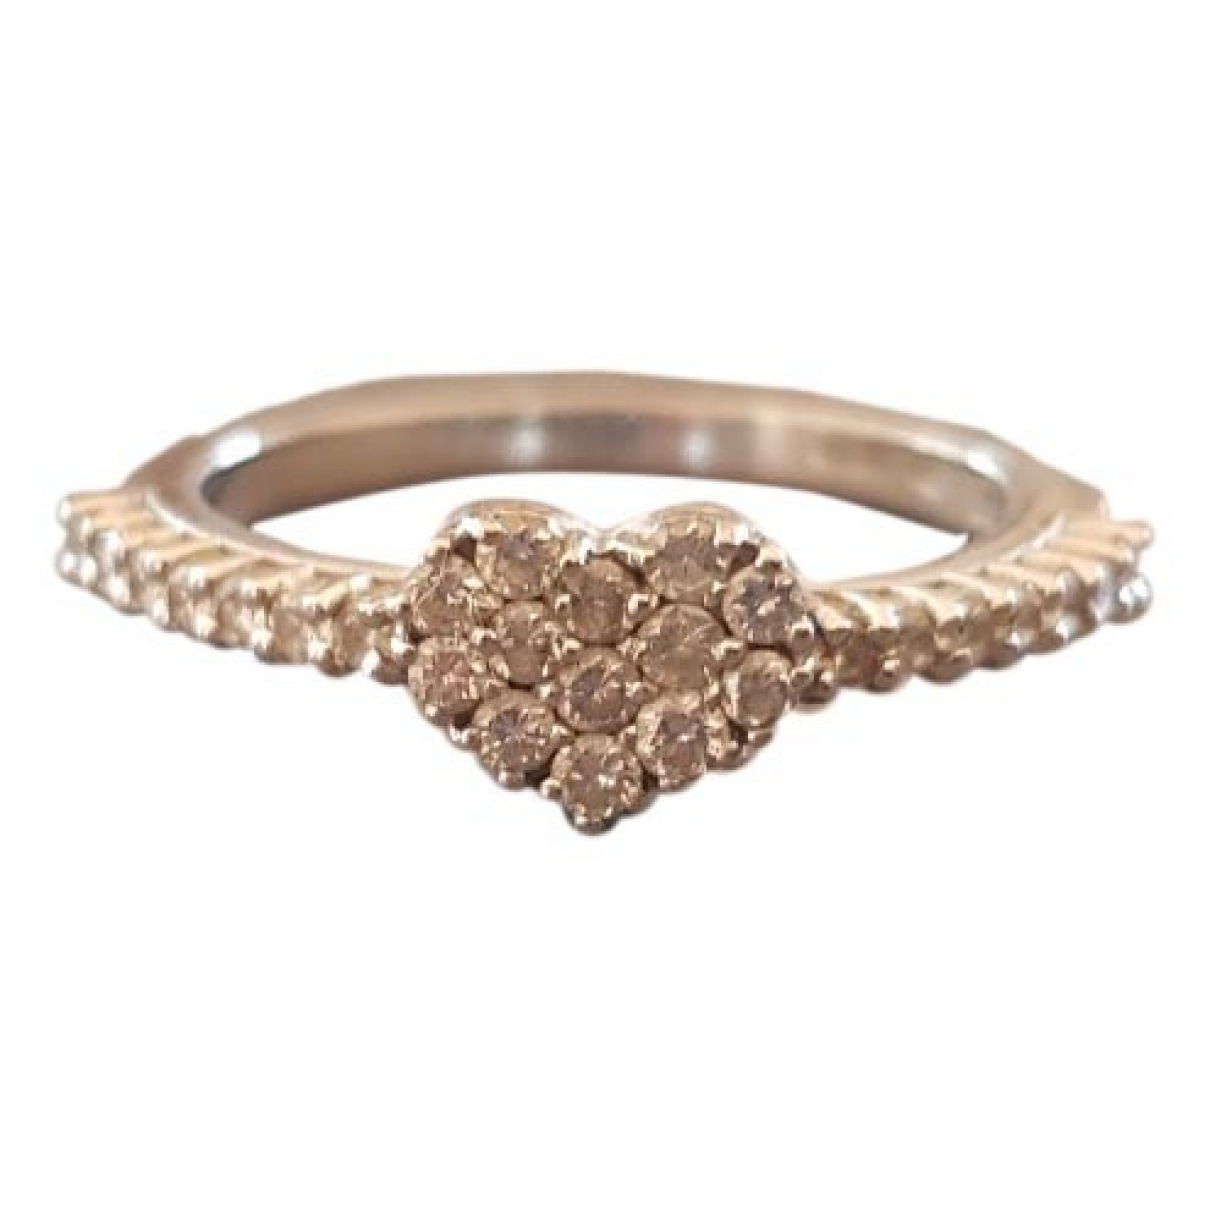 Pasquale Bruni \N Ring in  Silber Weissgold